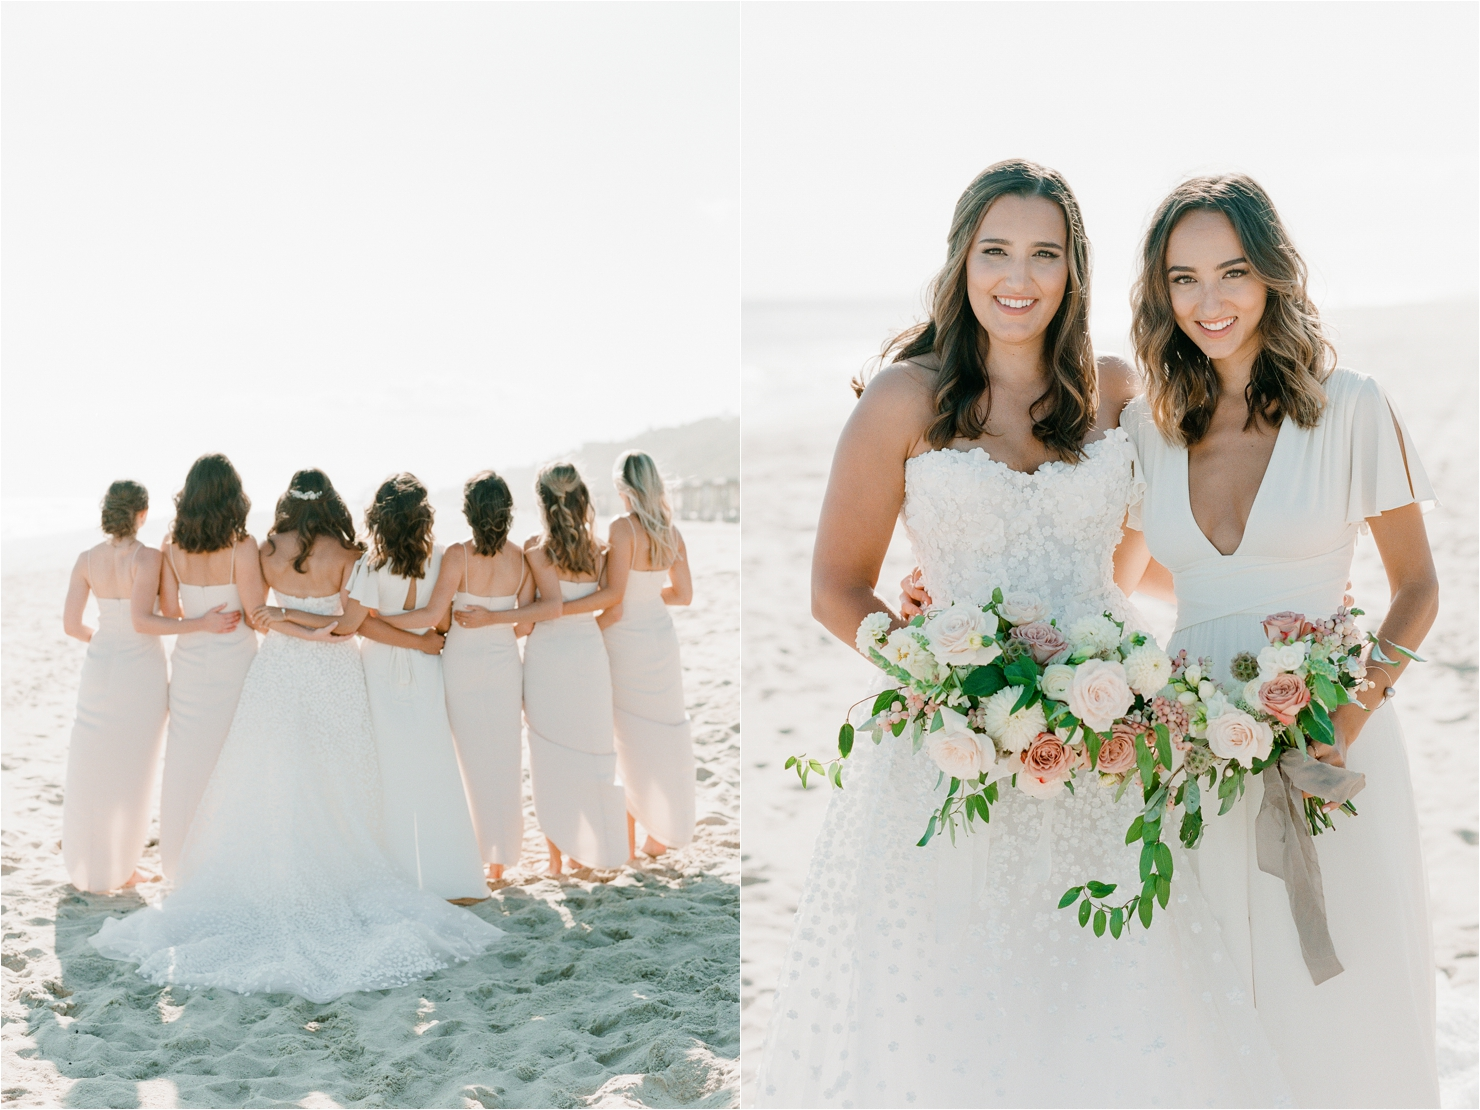 Bridesmaids Photos on Beach in Montauk